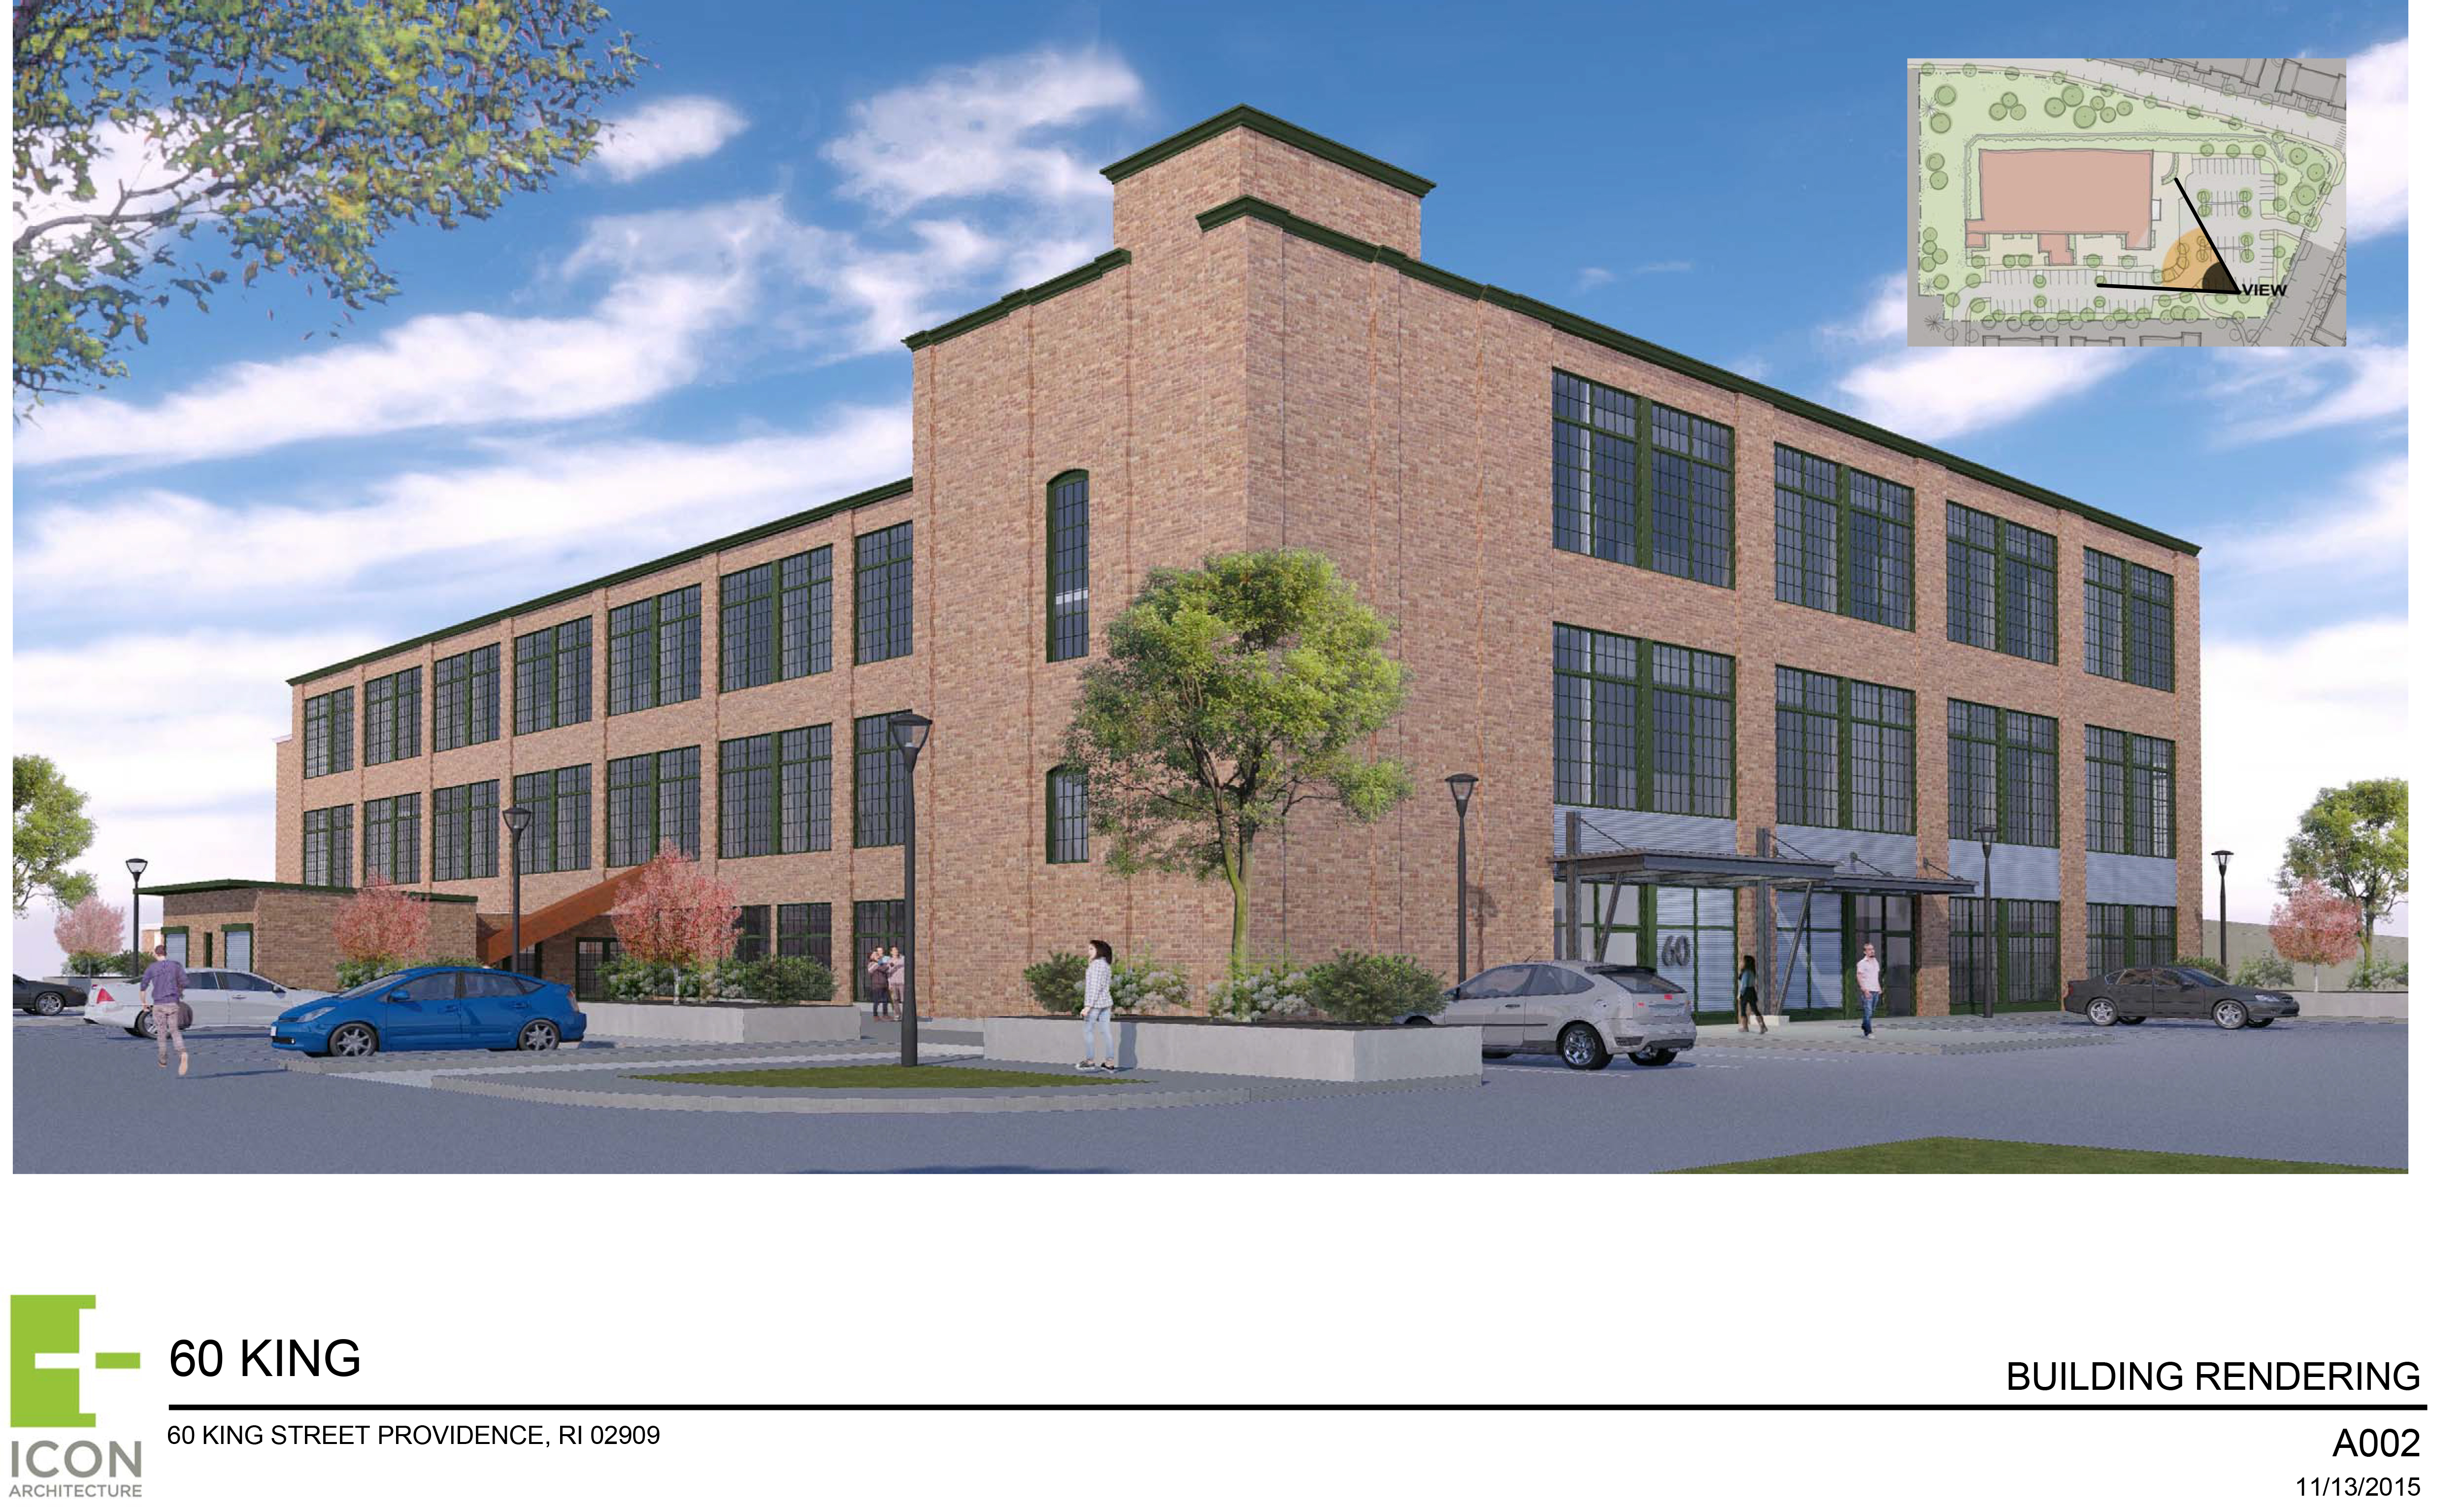 60 king site plan and rendering 2